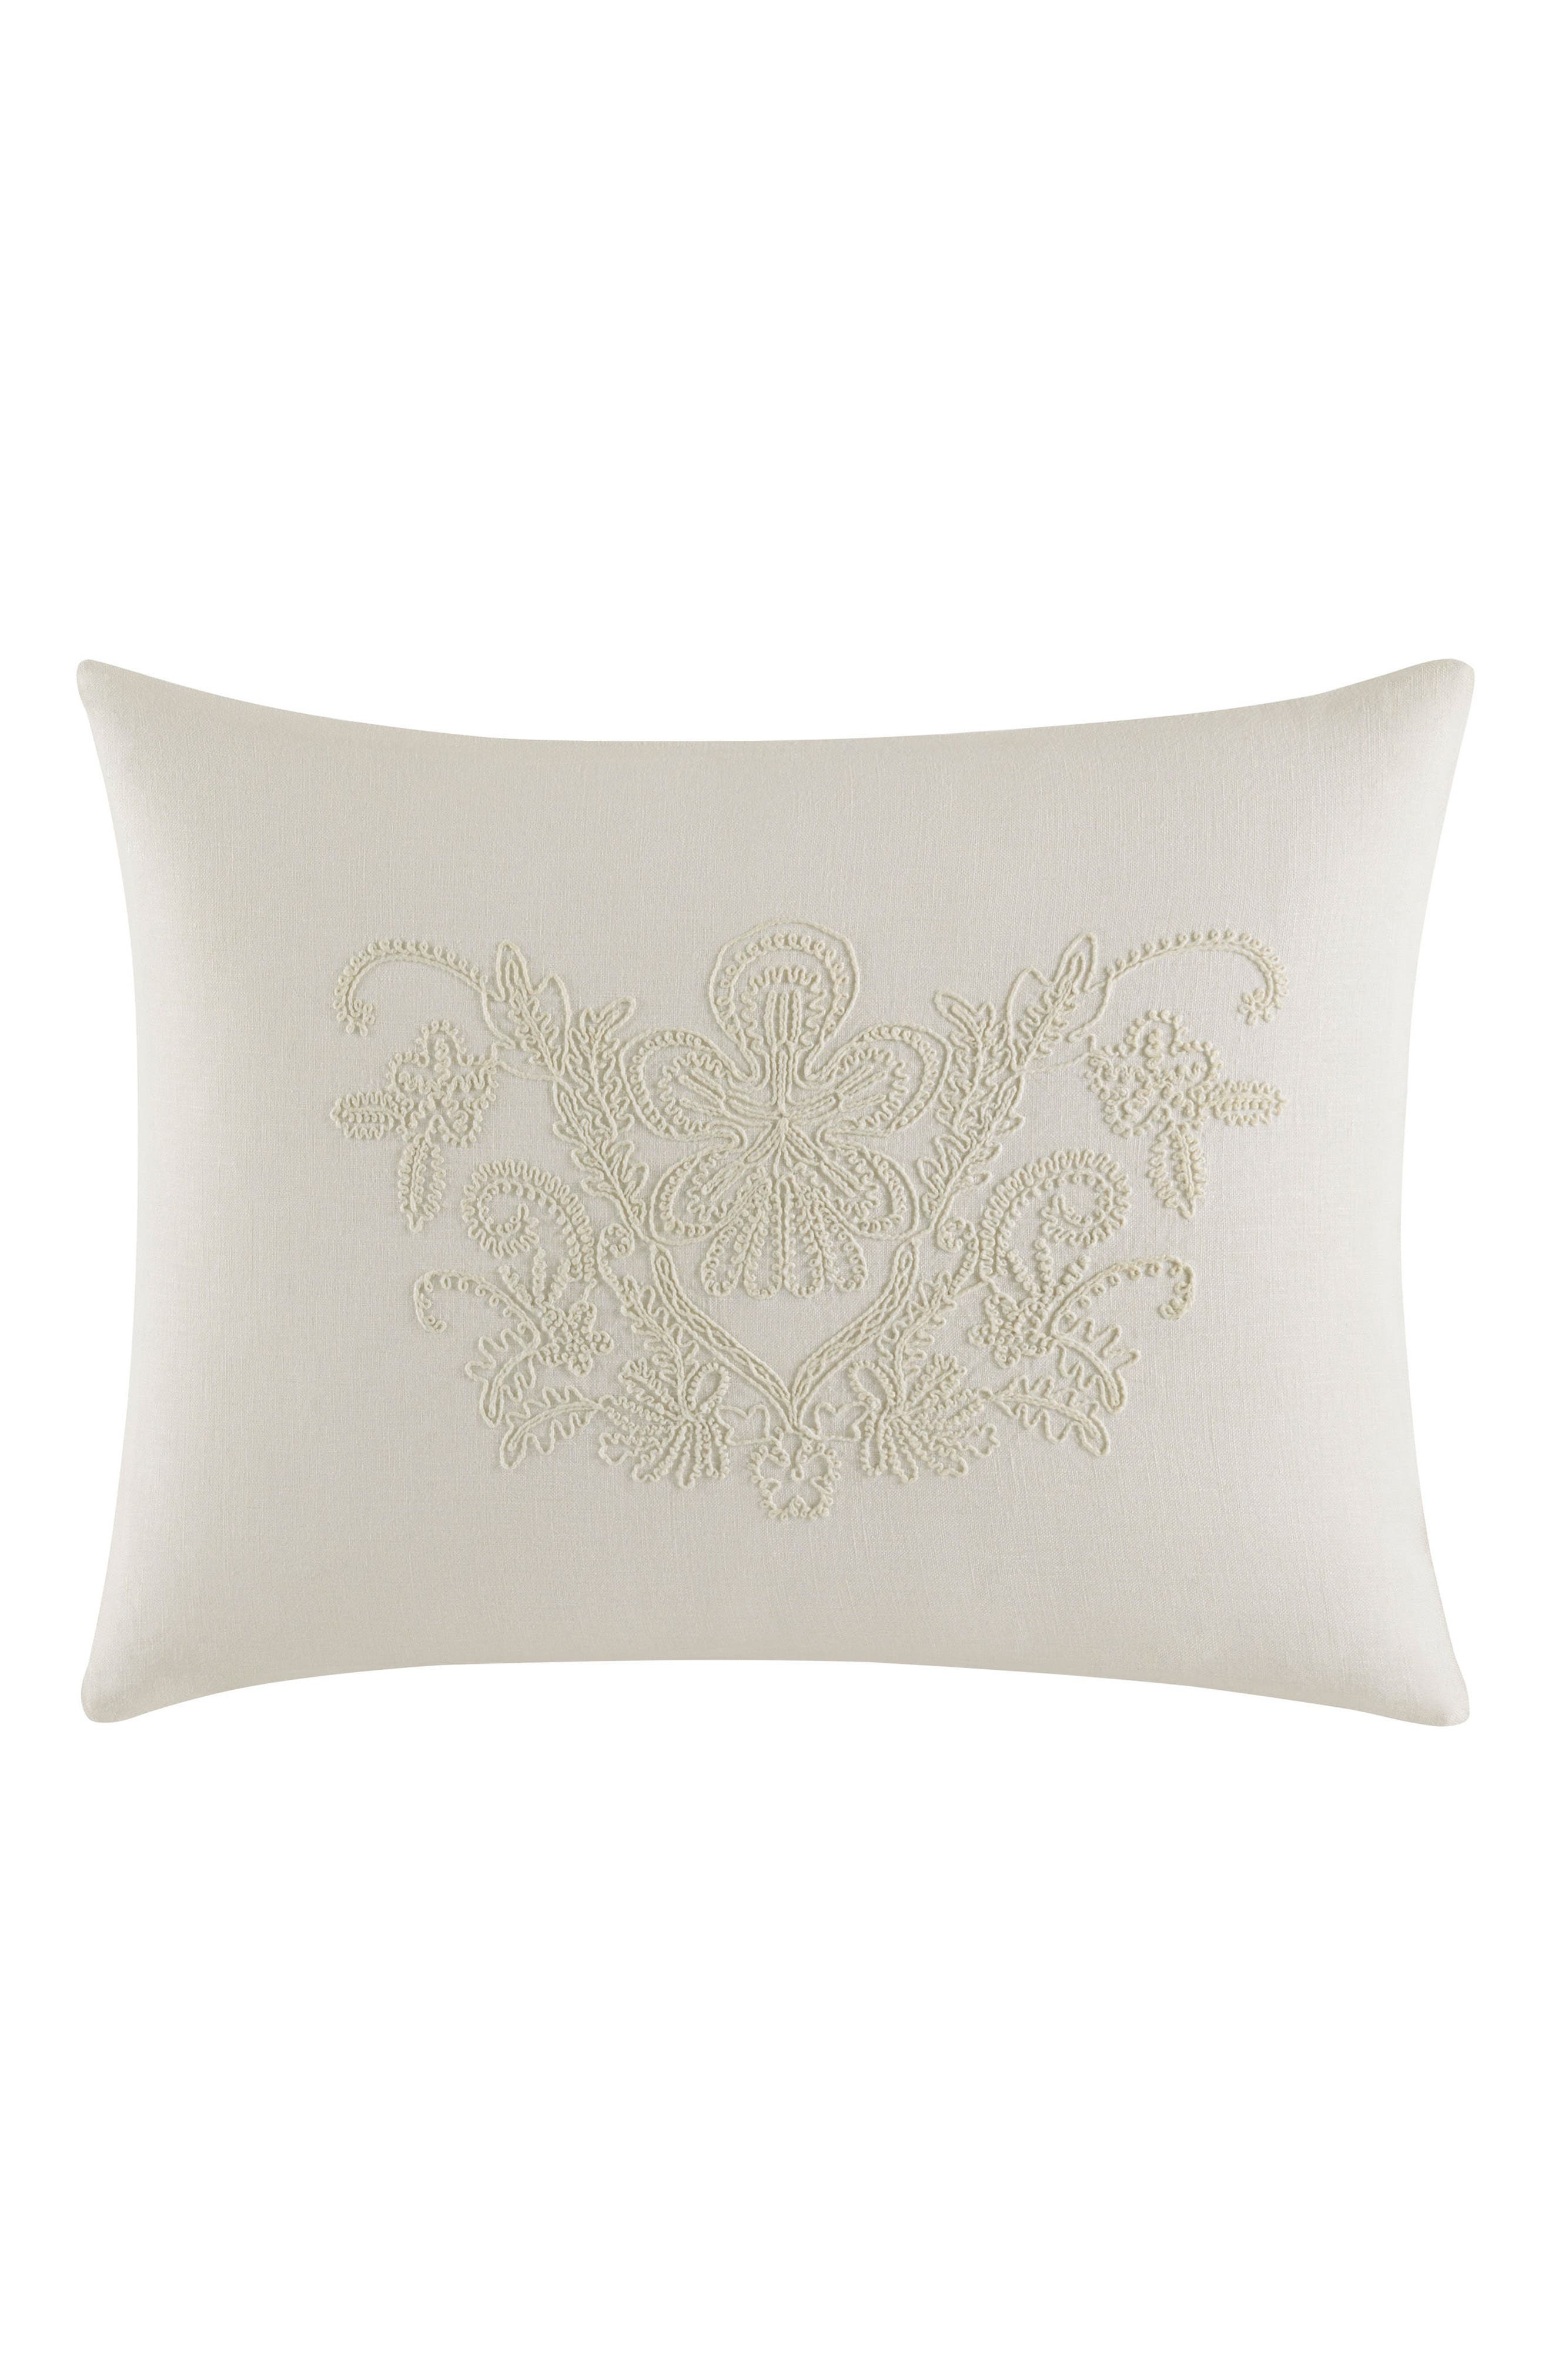 Vera Wang Passementerie Breakfast Linen Accent Pillow